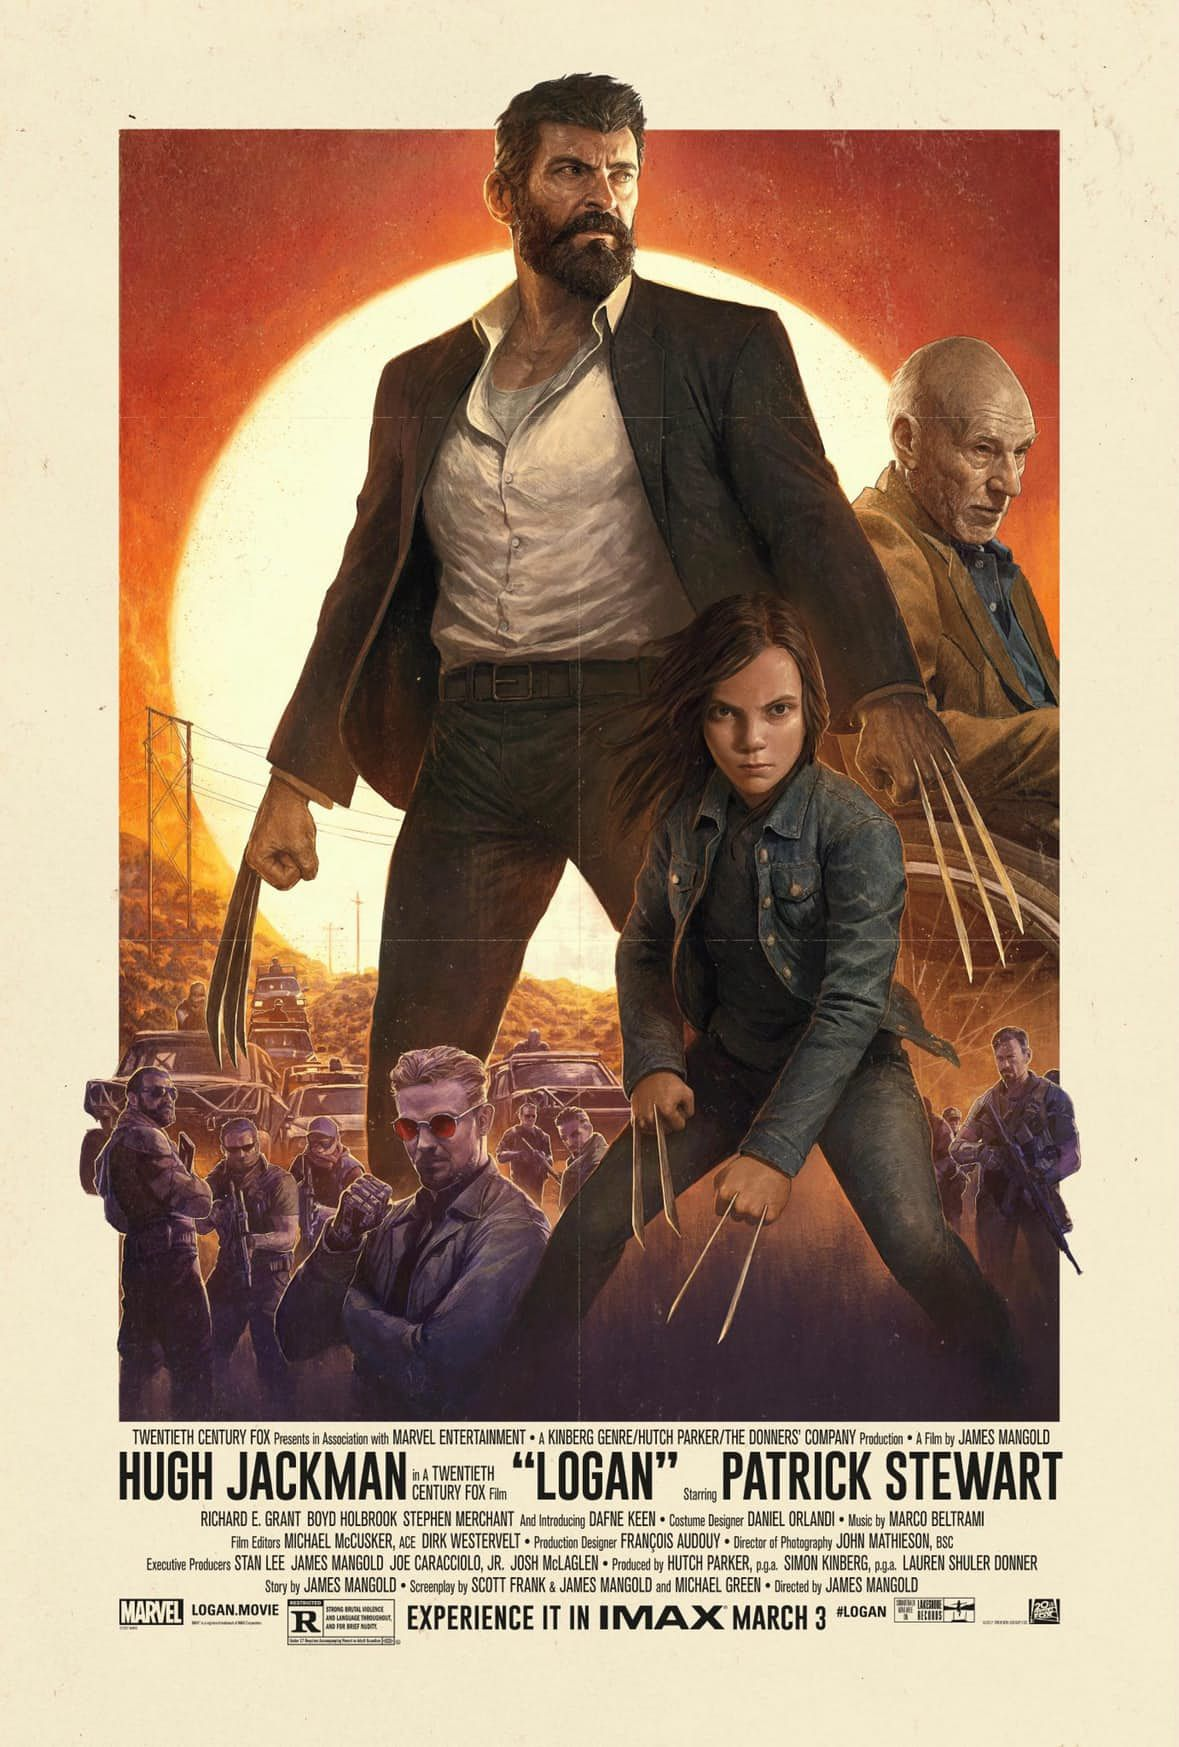 logan movie poster imax  1179    1747    Superhero Movie TV Stuff     logan movie poster imax  1179    1747